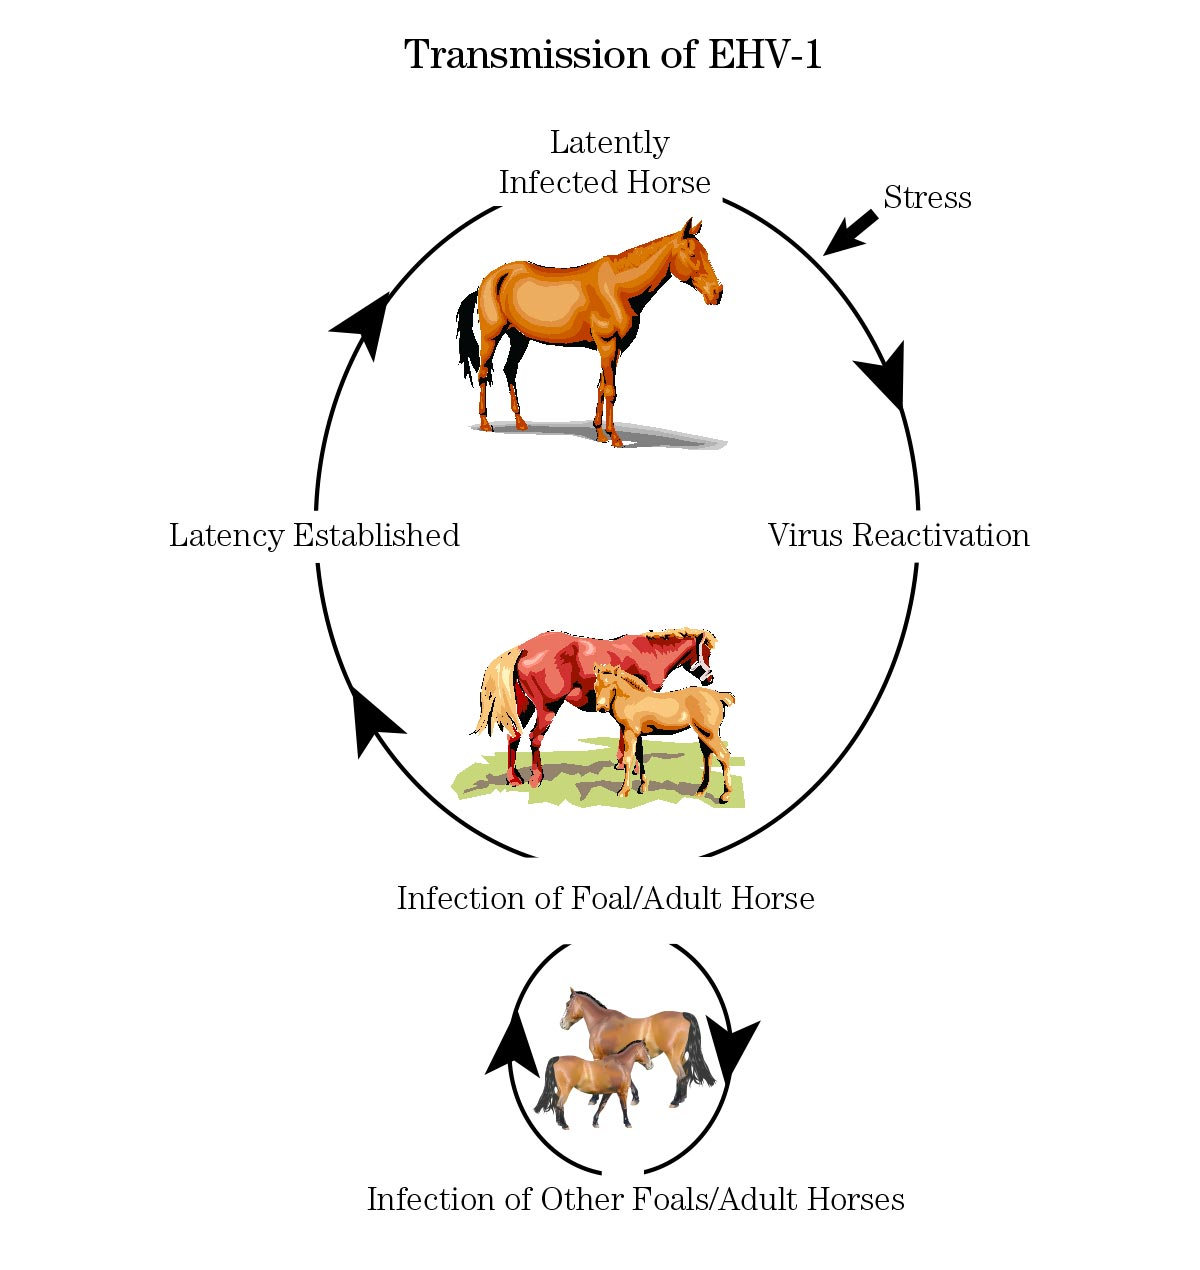 Transmission of EHV-1 in Horses